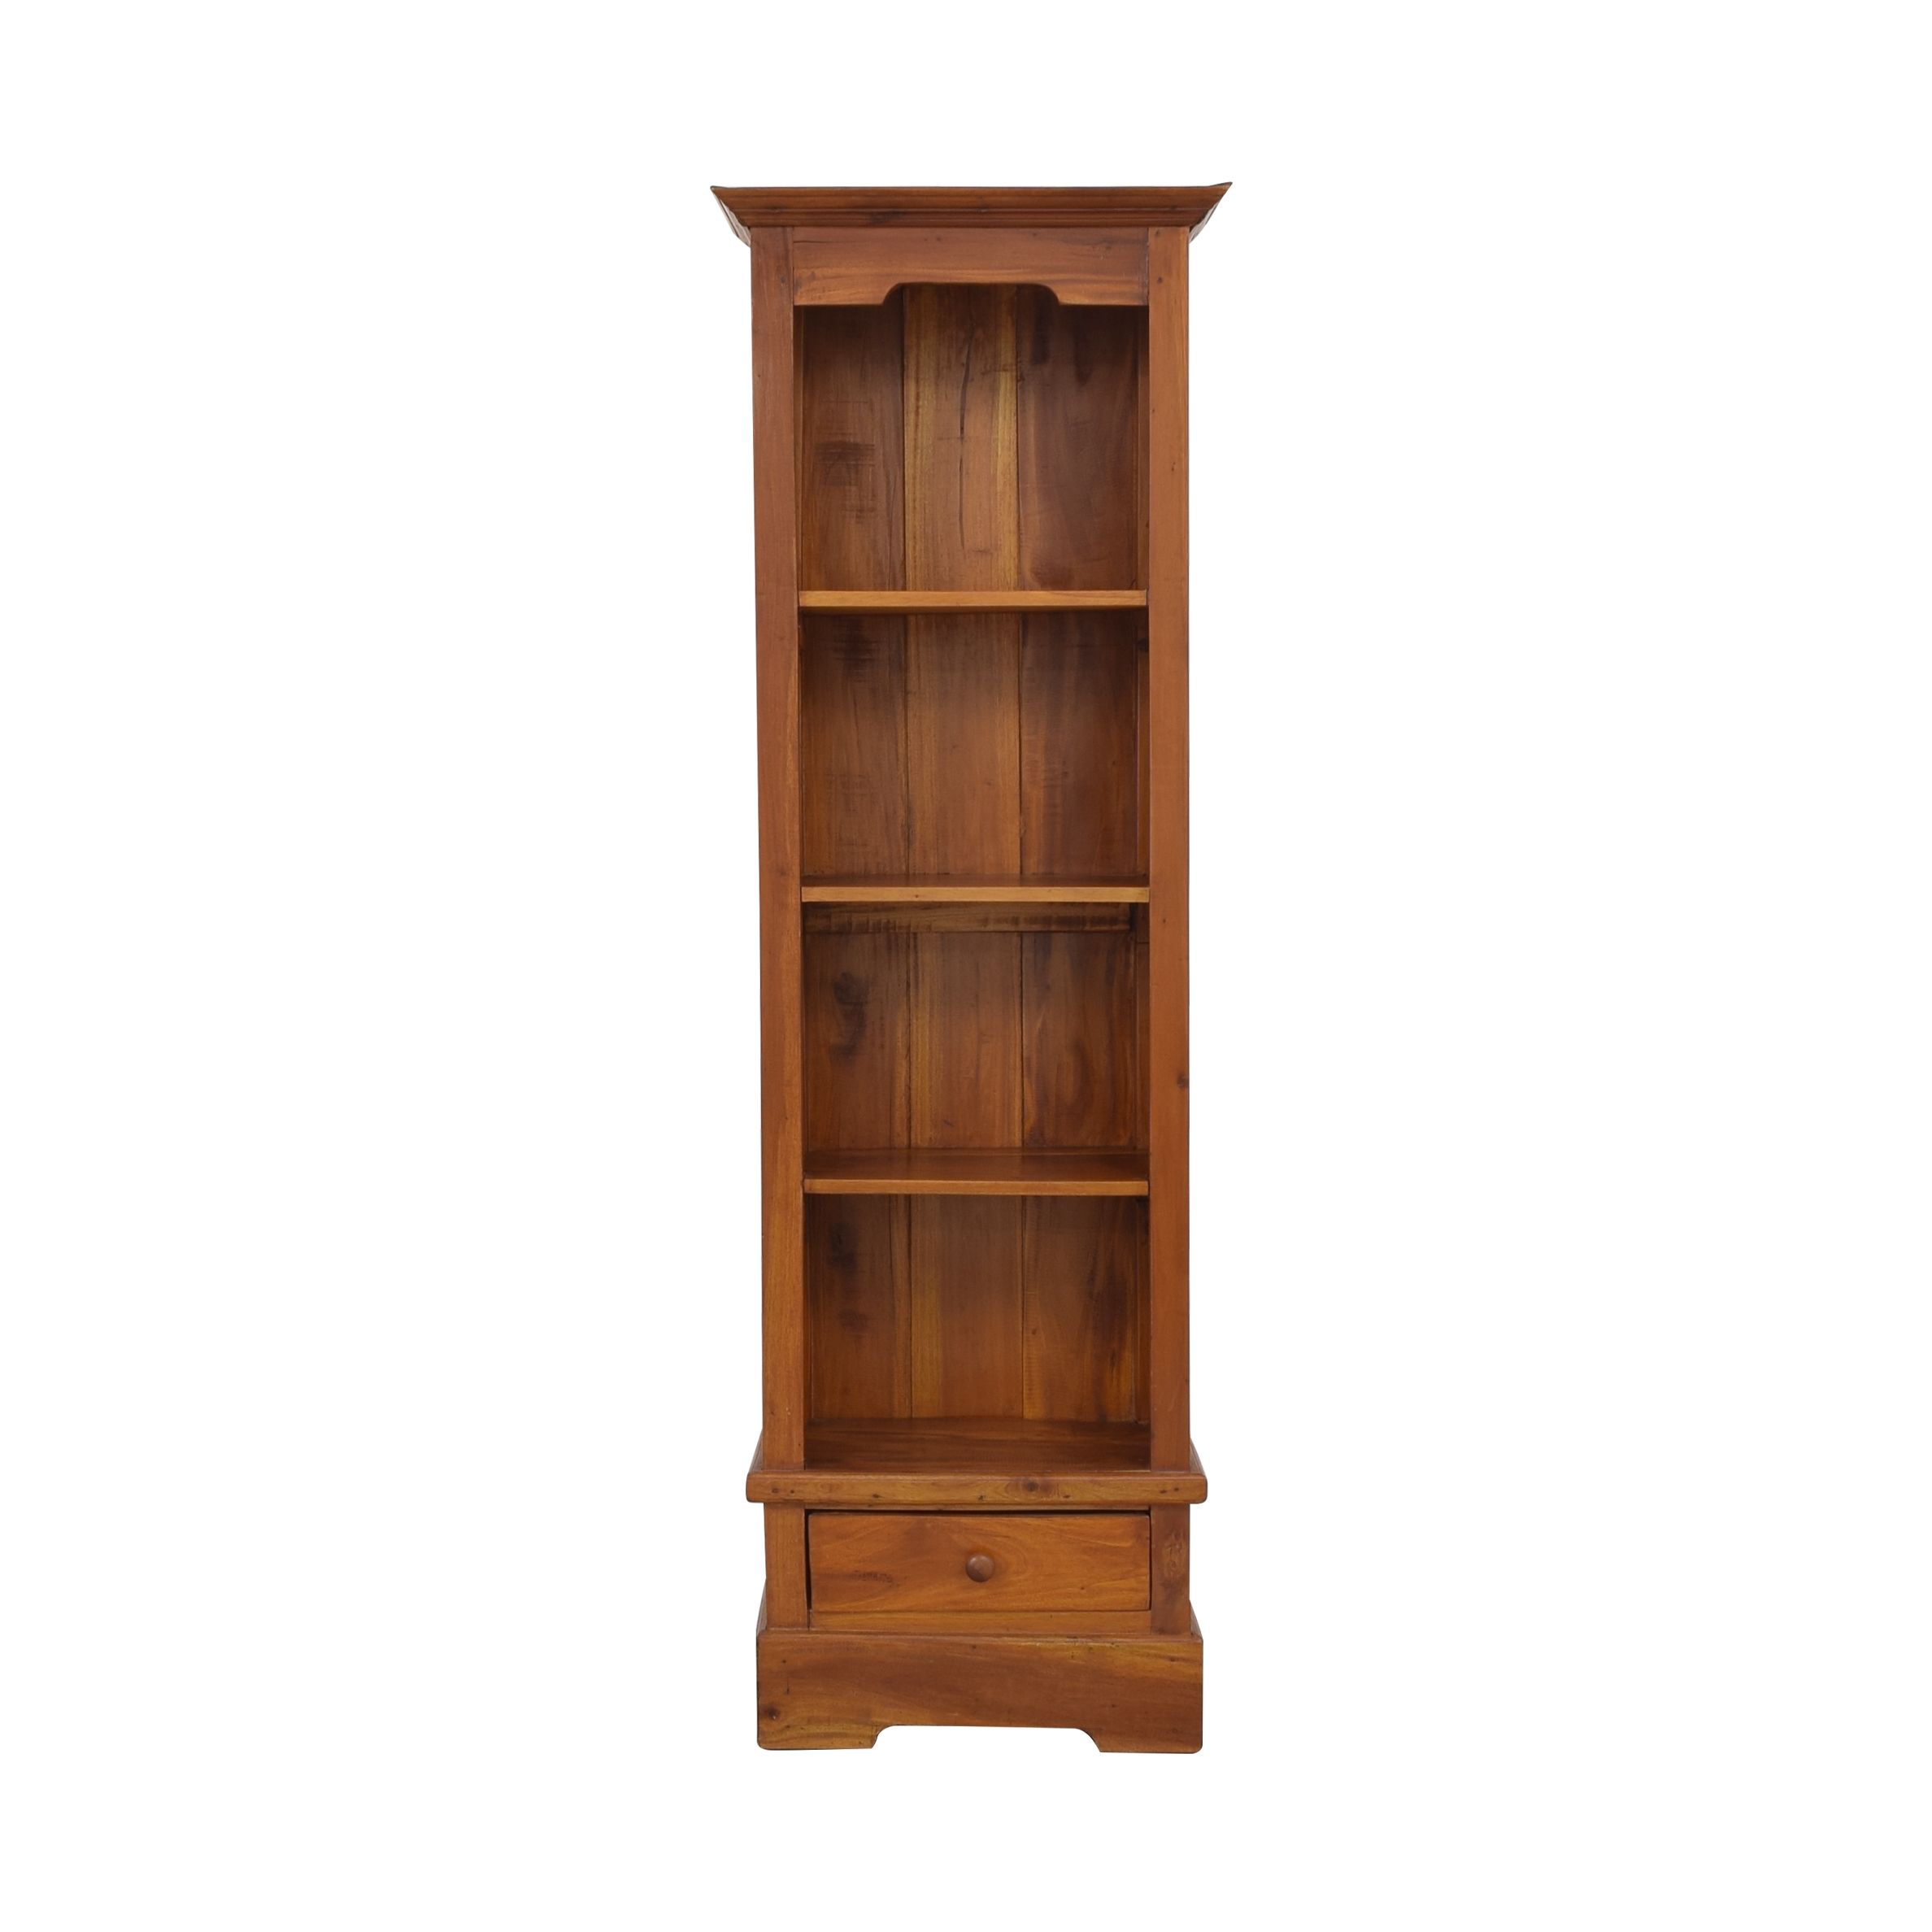 Tall Wood Bookcase with Storage Drawer / Storage